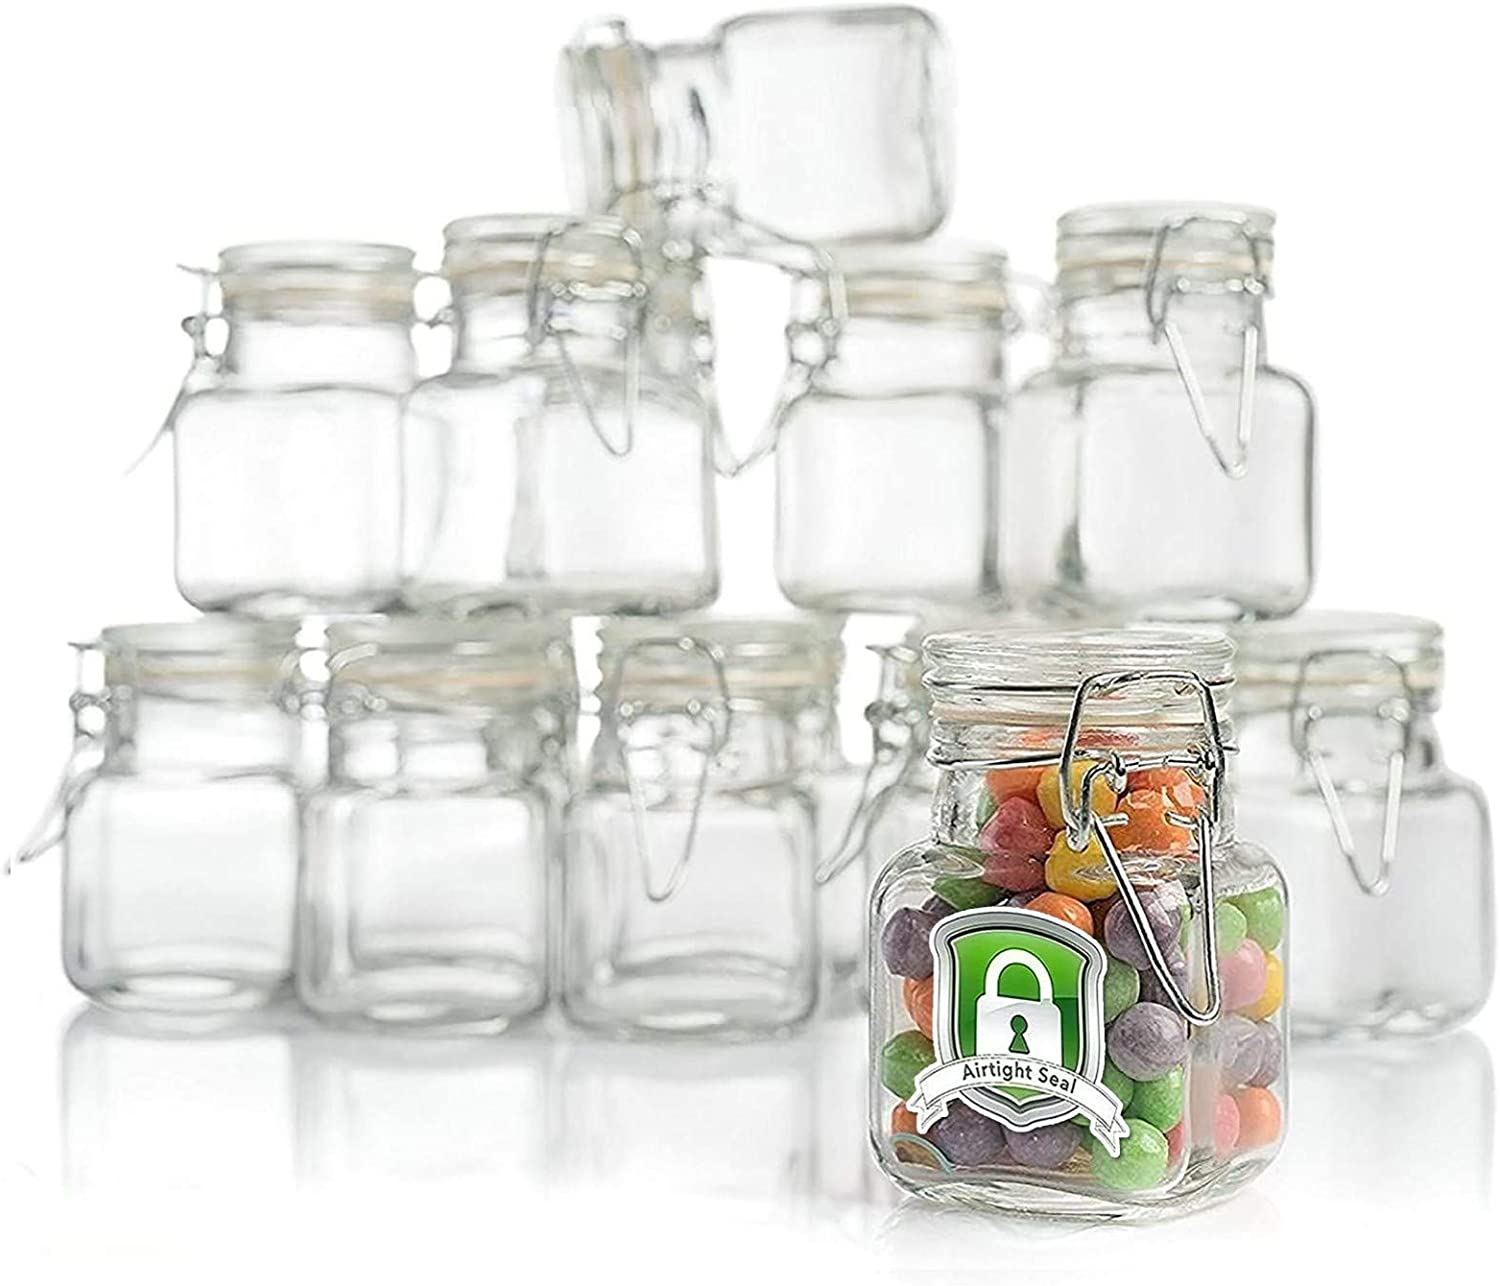 4 oz CLEAR Square GLASS JARS Bottles with Lids Wedding Party Gift Favors Holders